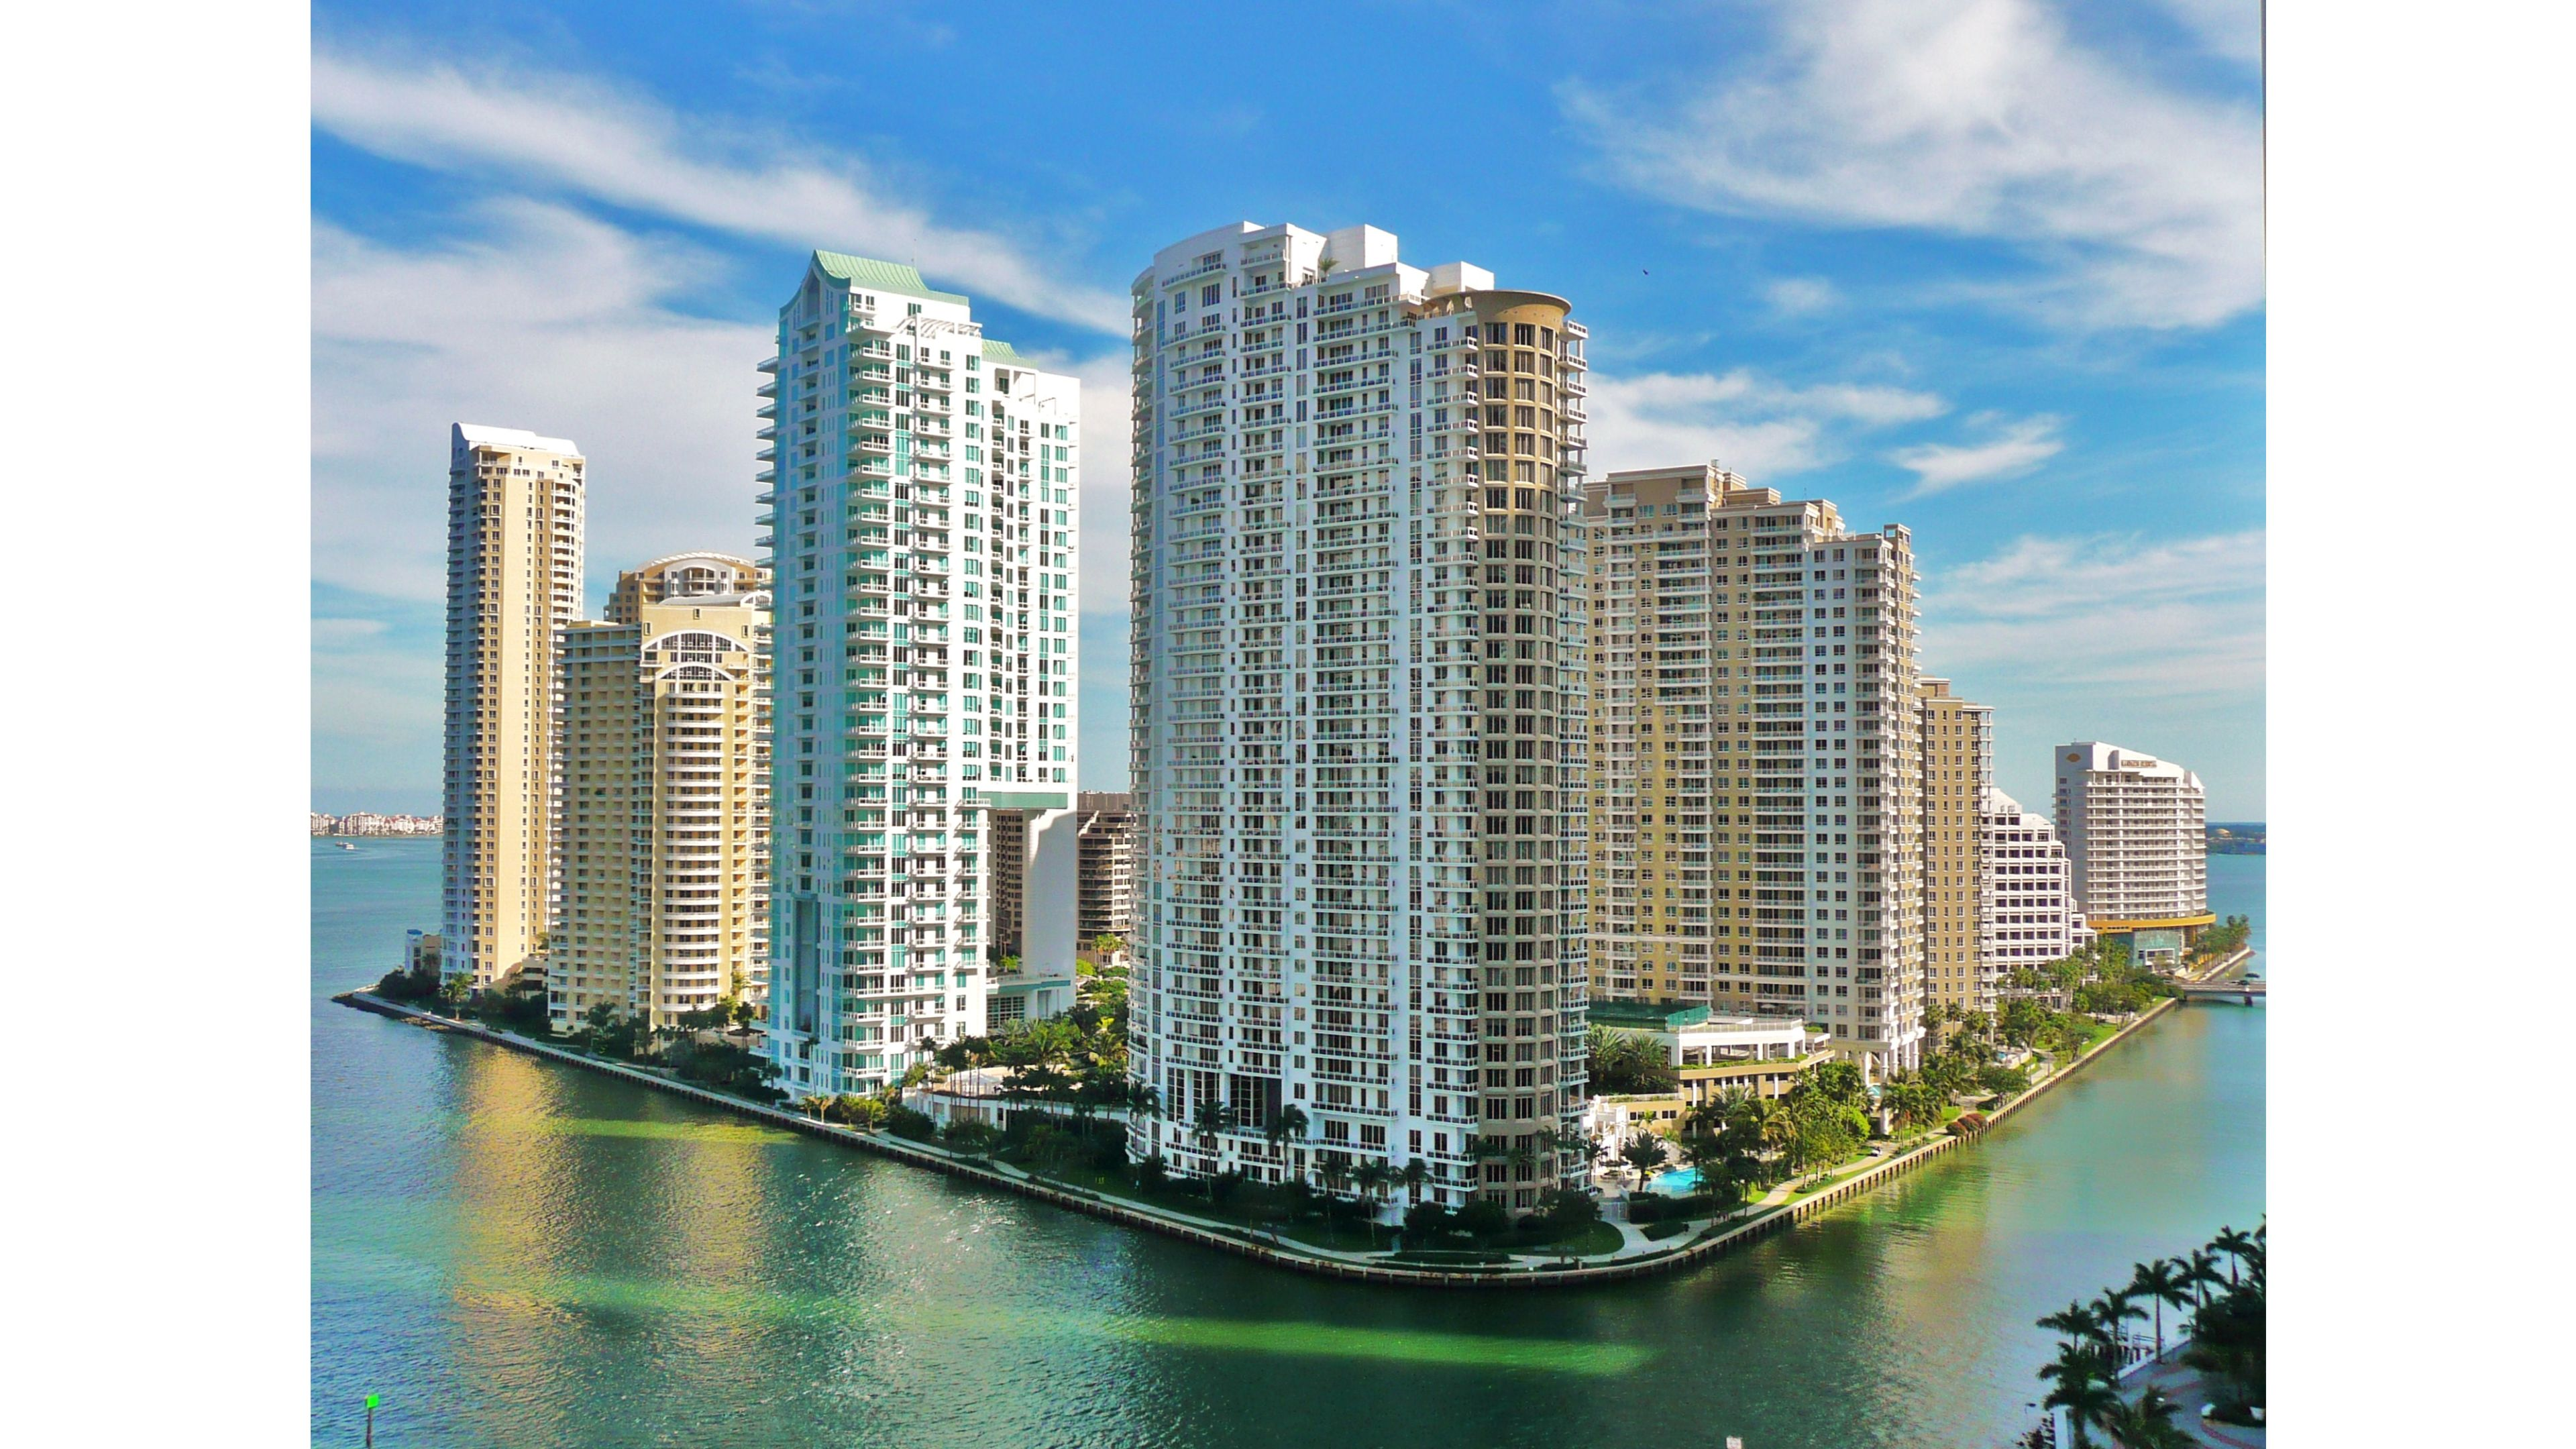 Miami wallpapers photos and desktop backgrounds up to 8k for Trending wallpaper